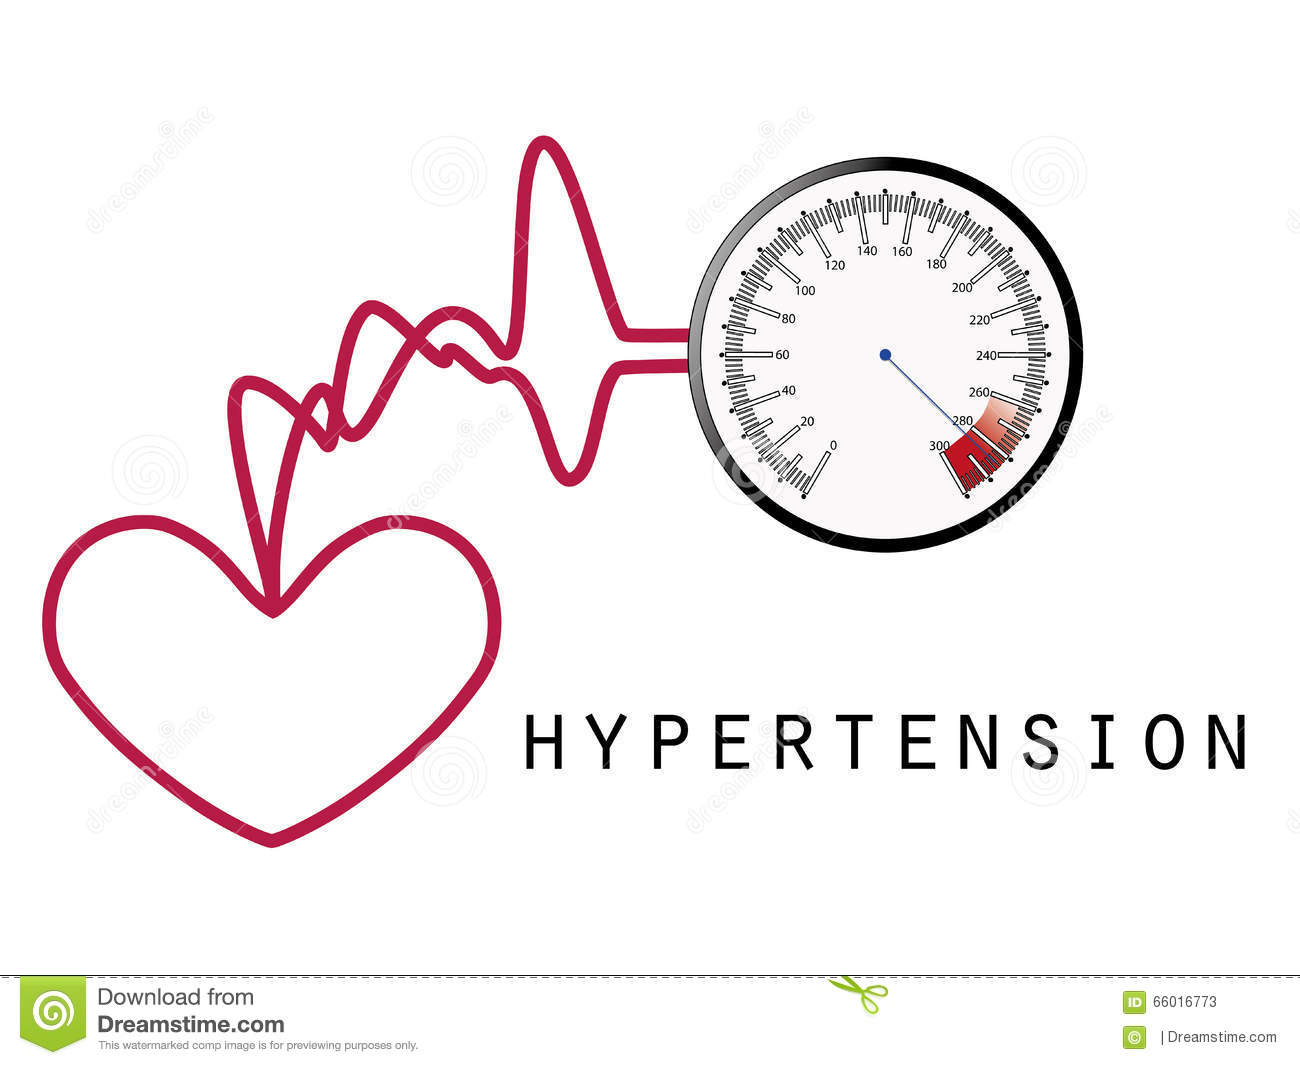 Hypertension also known as high blood pressure or arterial ...